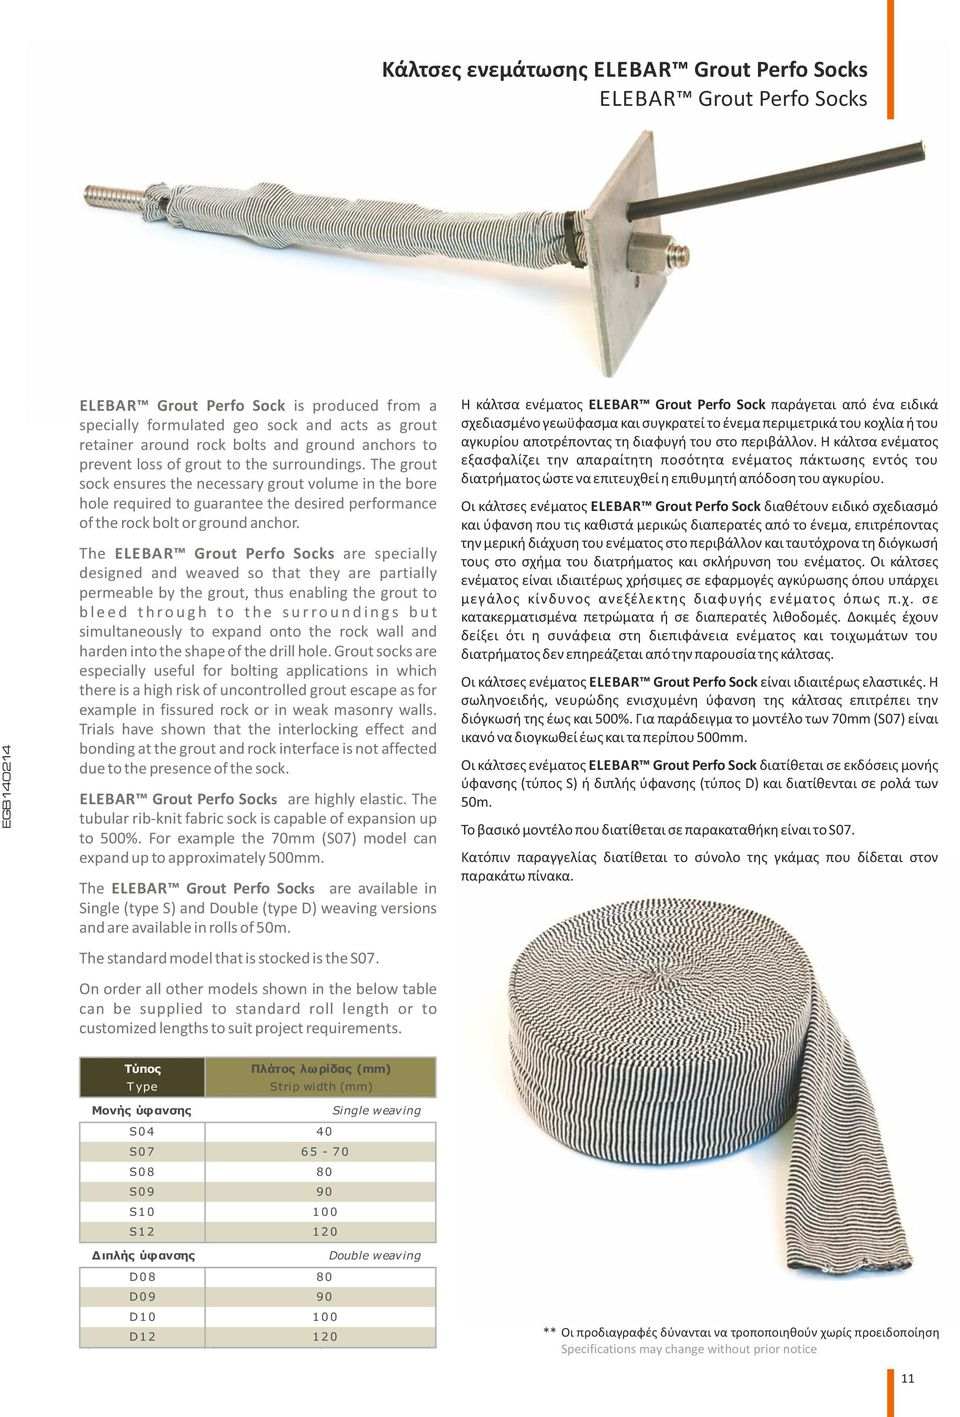 The grout sock ensures the necessary grout volume in the bore hole required to guarantee the desired performance of the rock bolt or ground anchor.